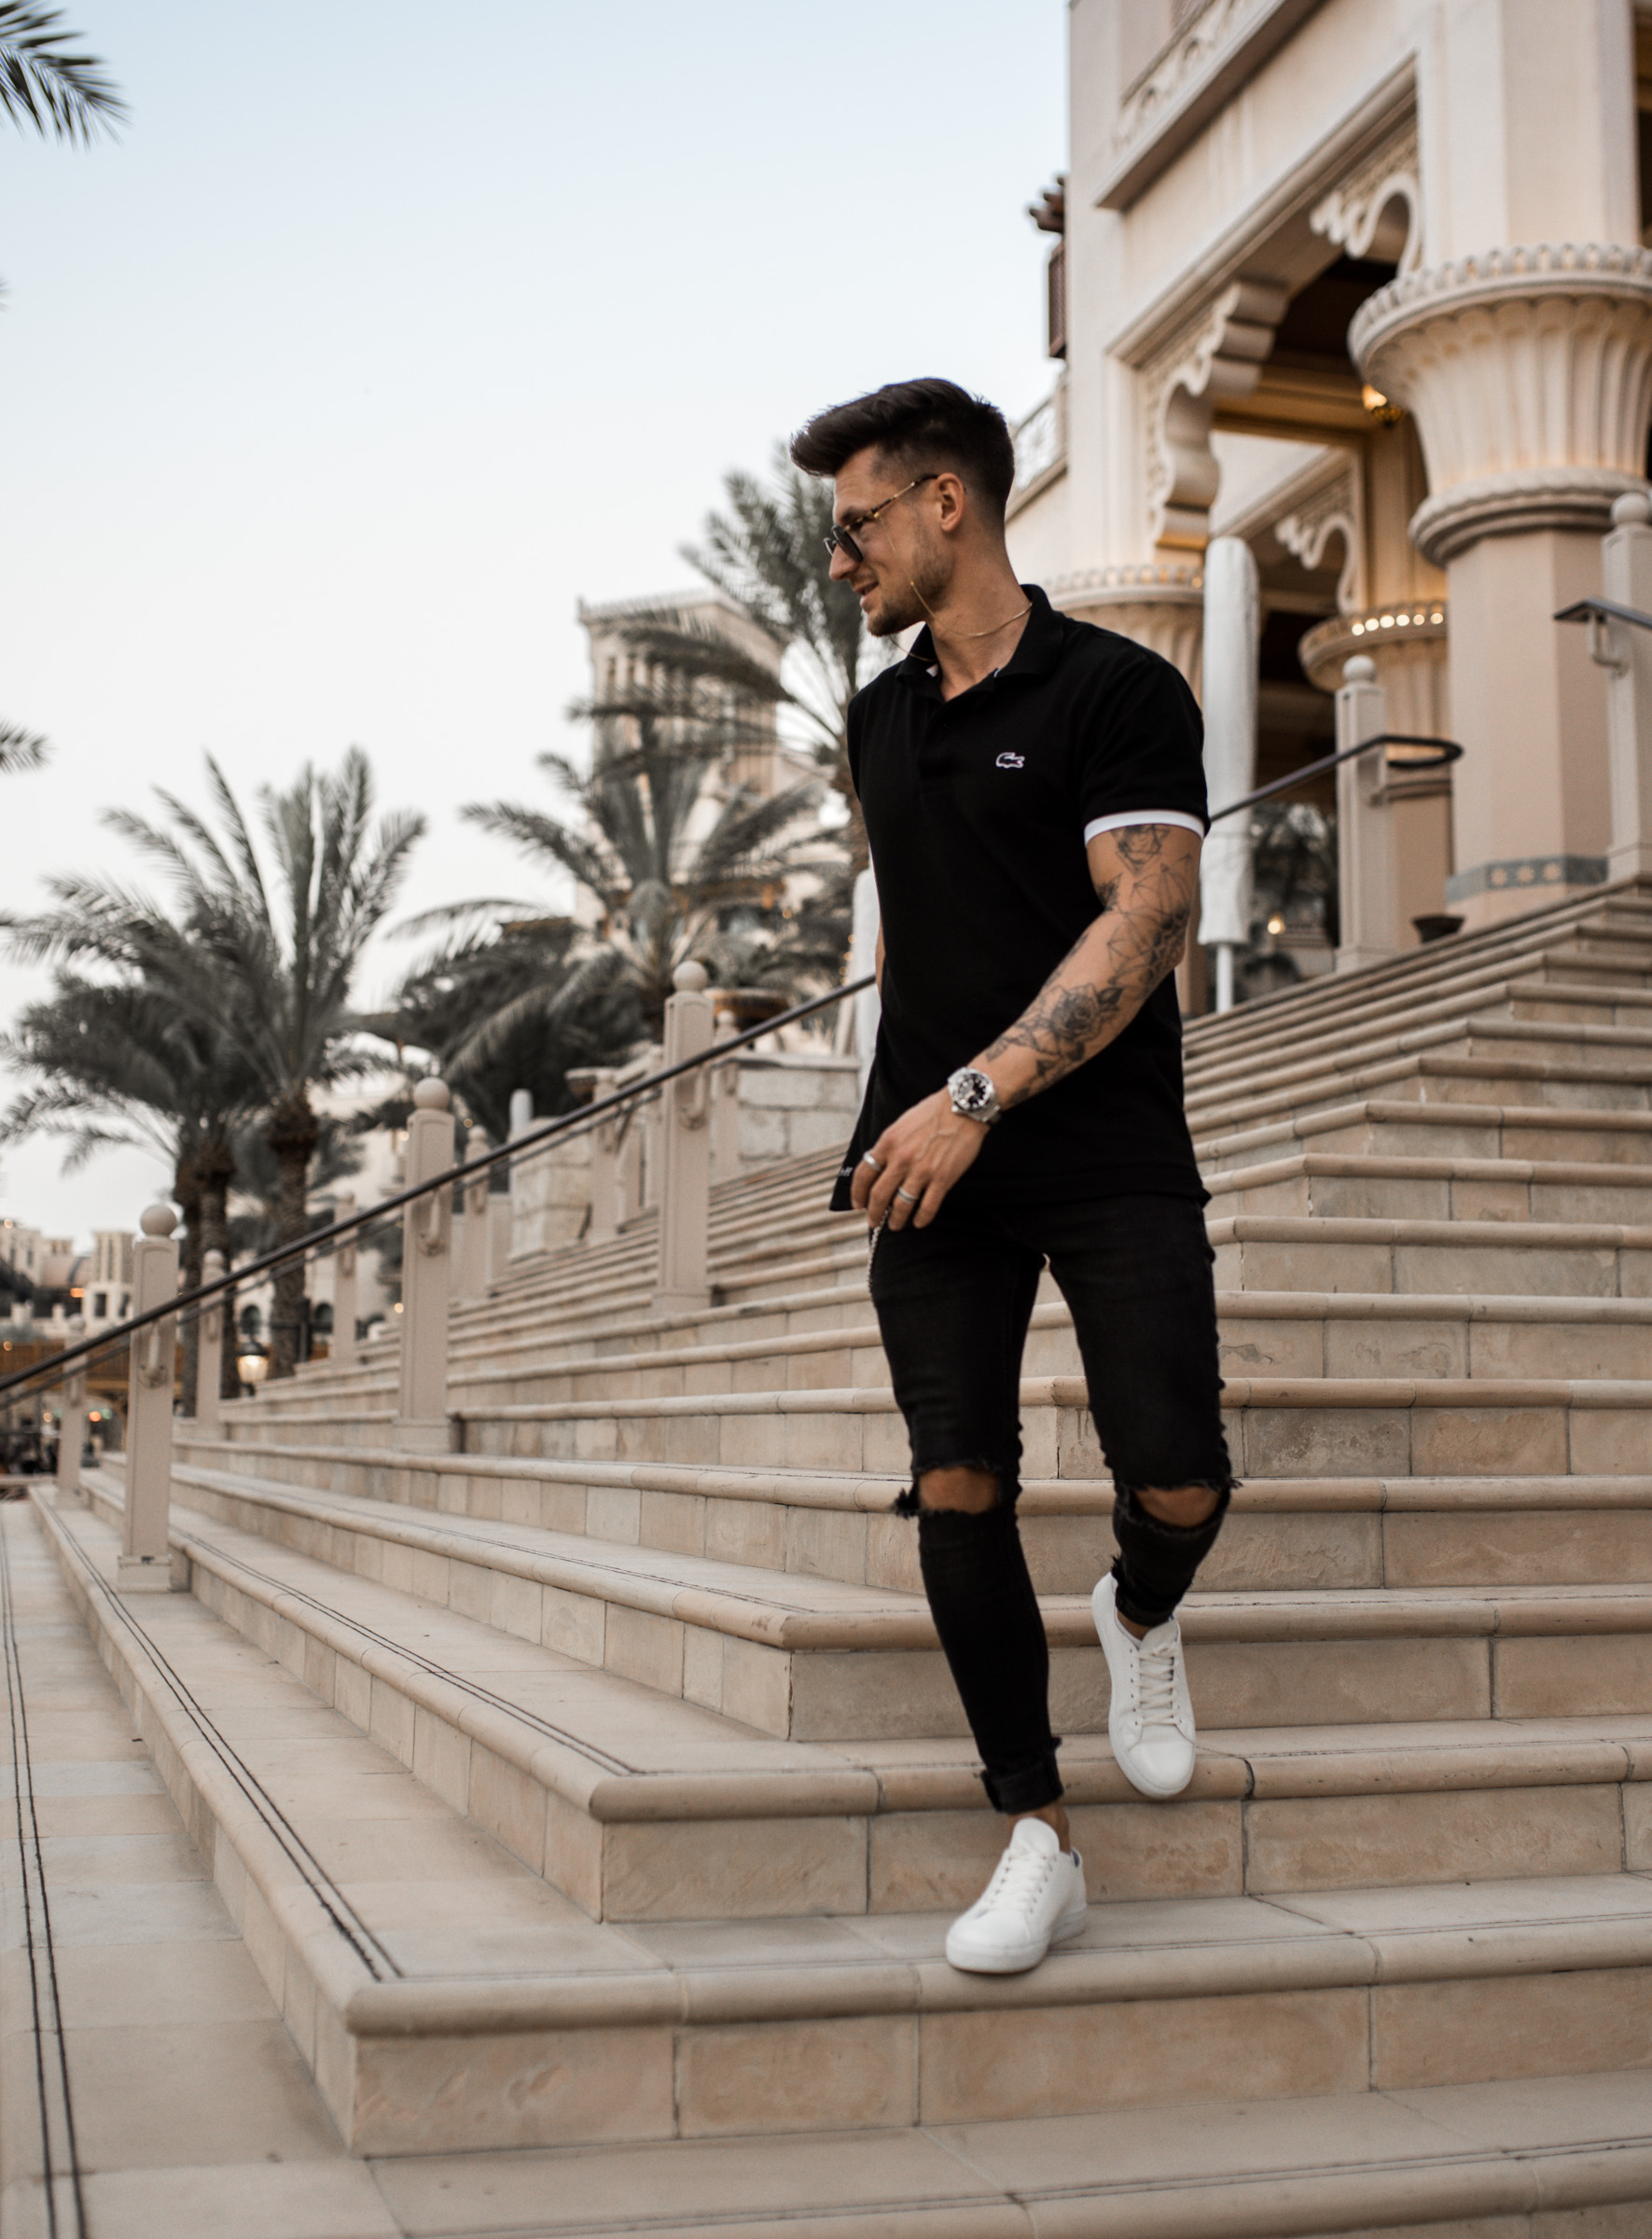 Tommeezjerry-Lifestyleblog-Fashionblog-Maennermodeblog-Maennerblog-Modeblog-Dubai-Lacoste-Polo-Shirt-Outfit-Sommer-Look-Springtime